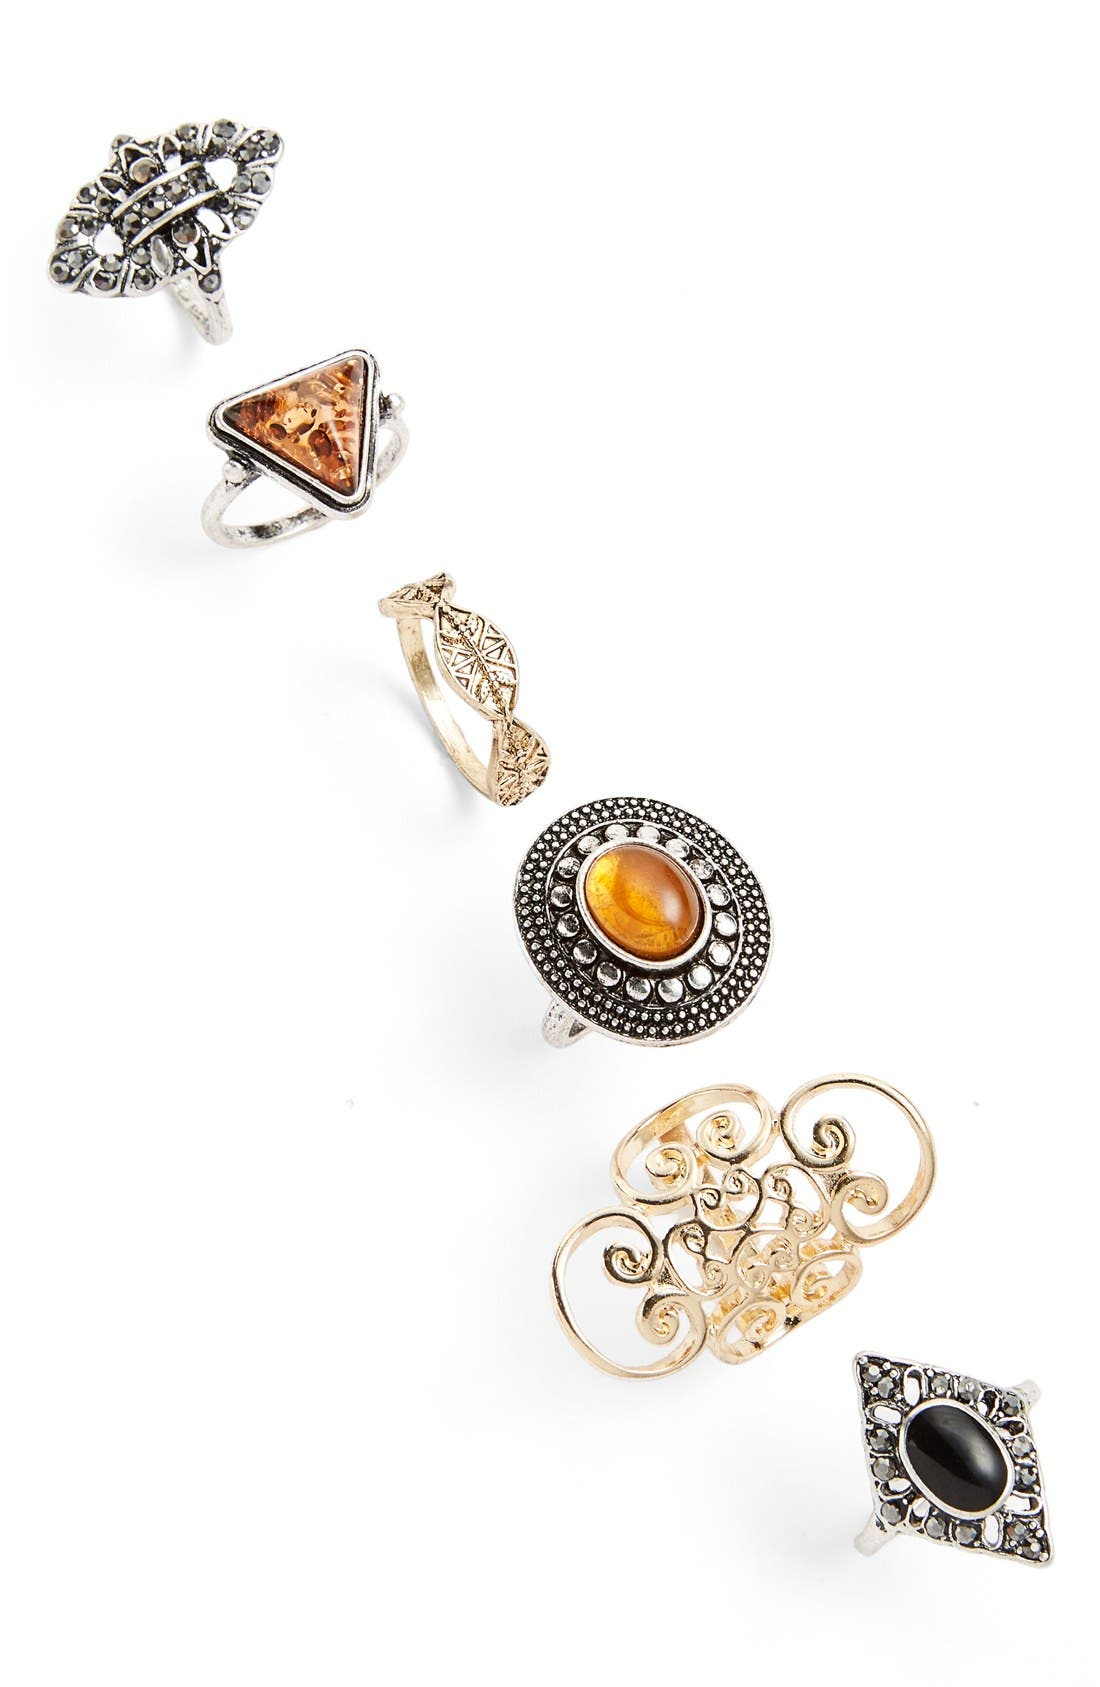 Alternate Image 1 Selected - Topshop 'Amber Look' Rings (Set of 6)